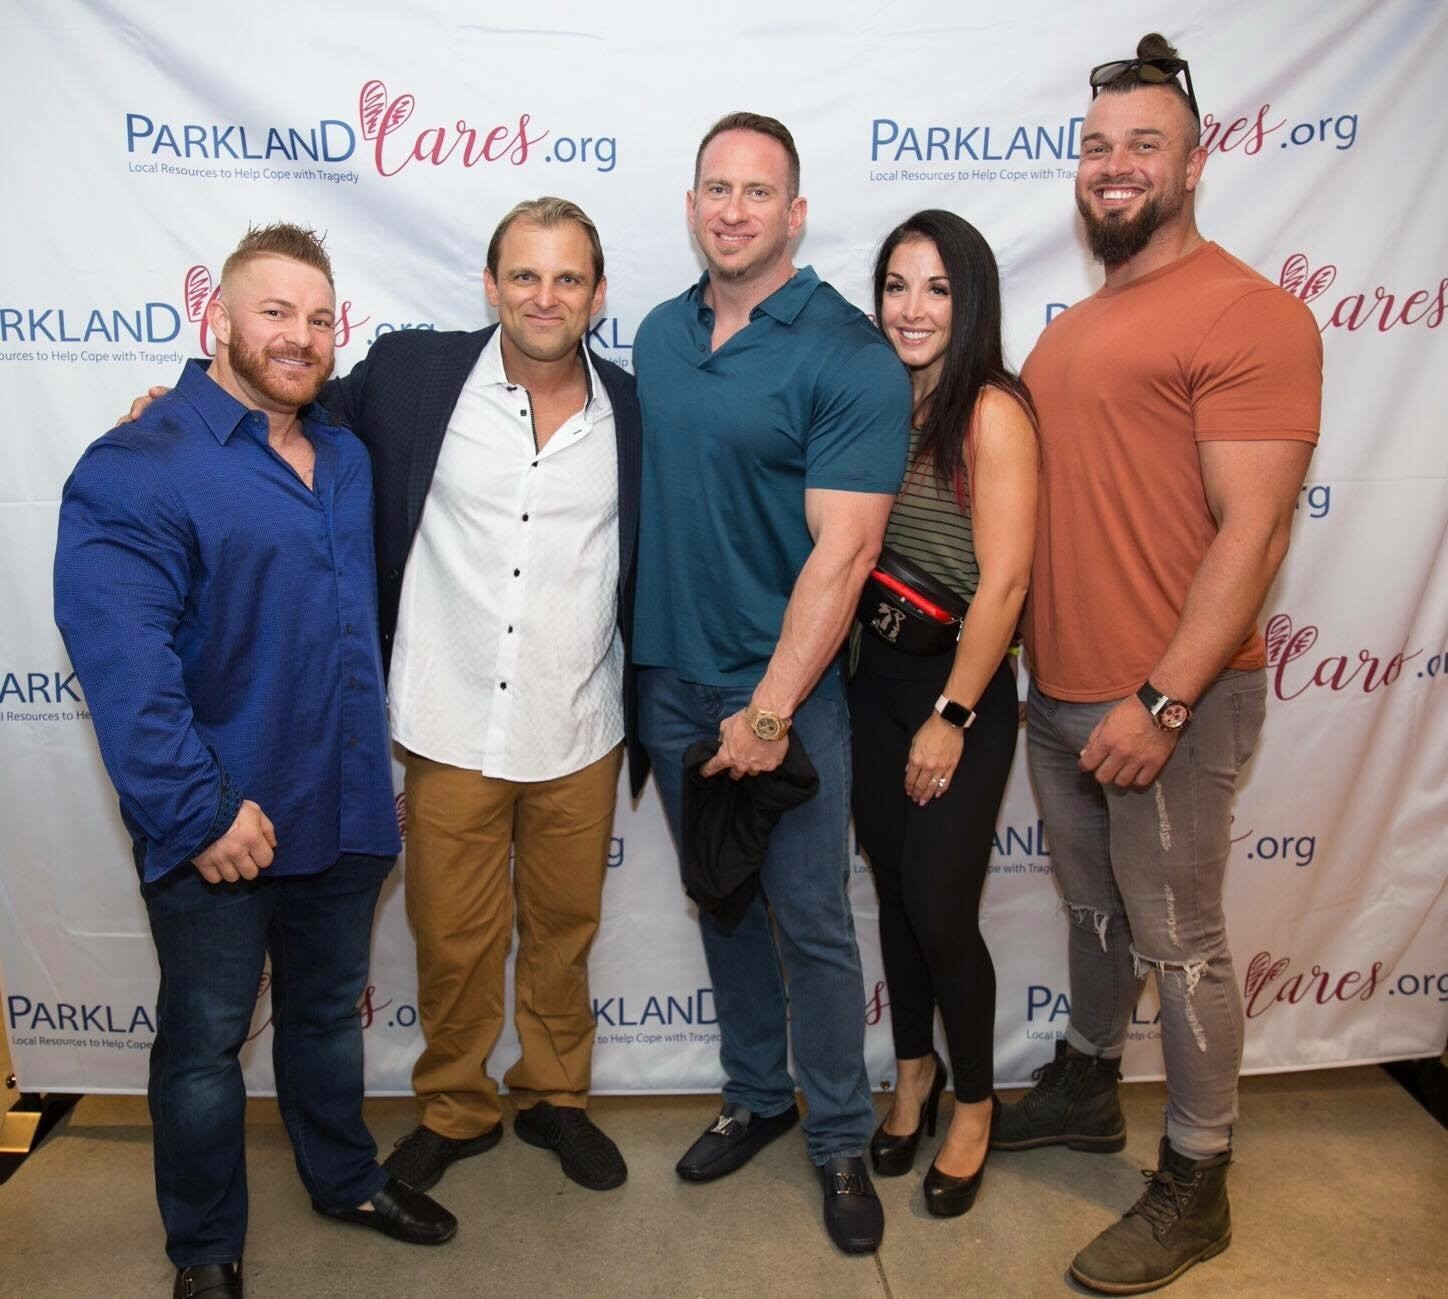 Dan Solomon and Friends at Parkland Cares event